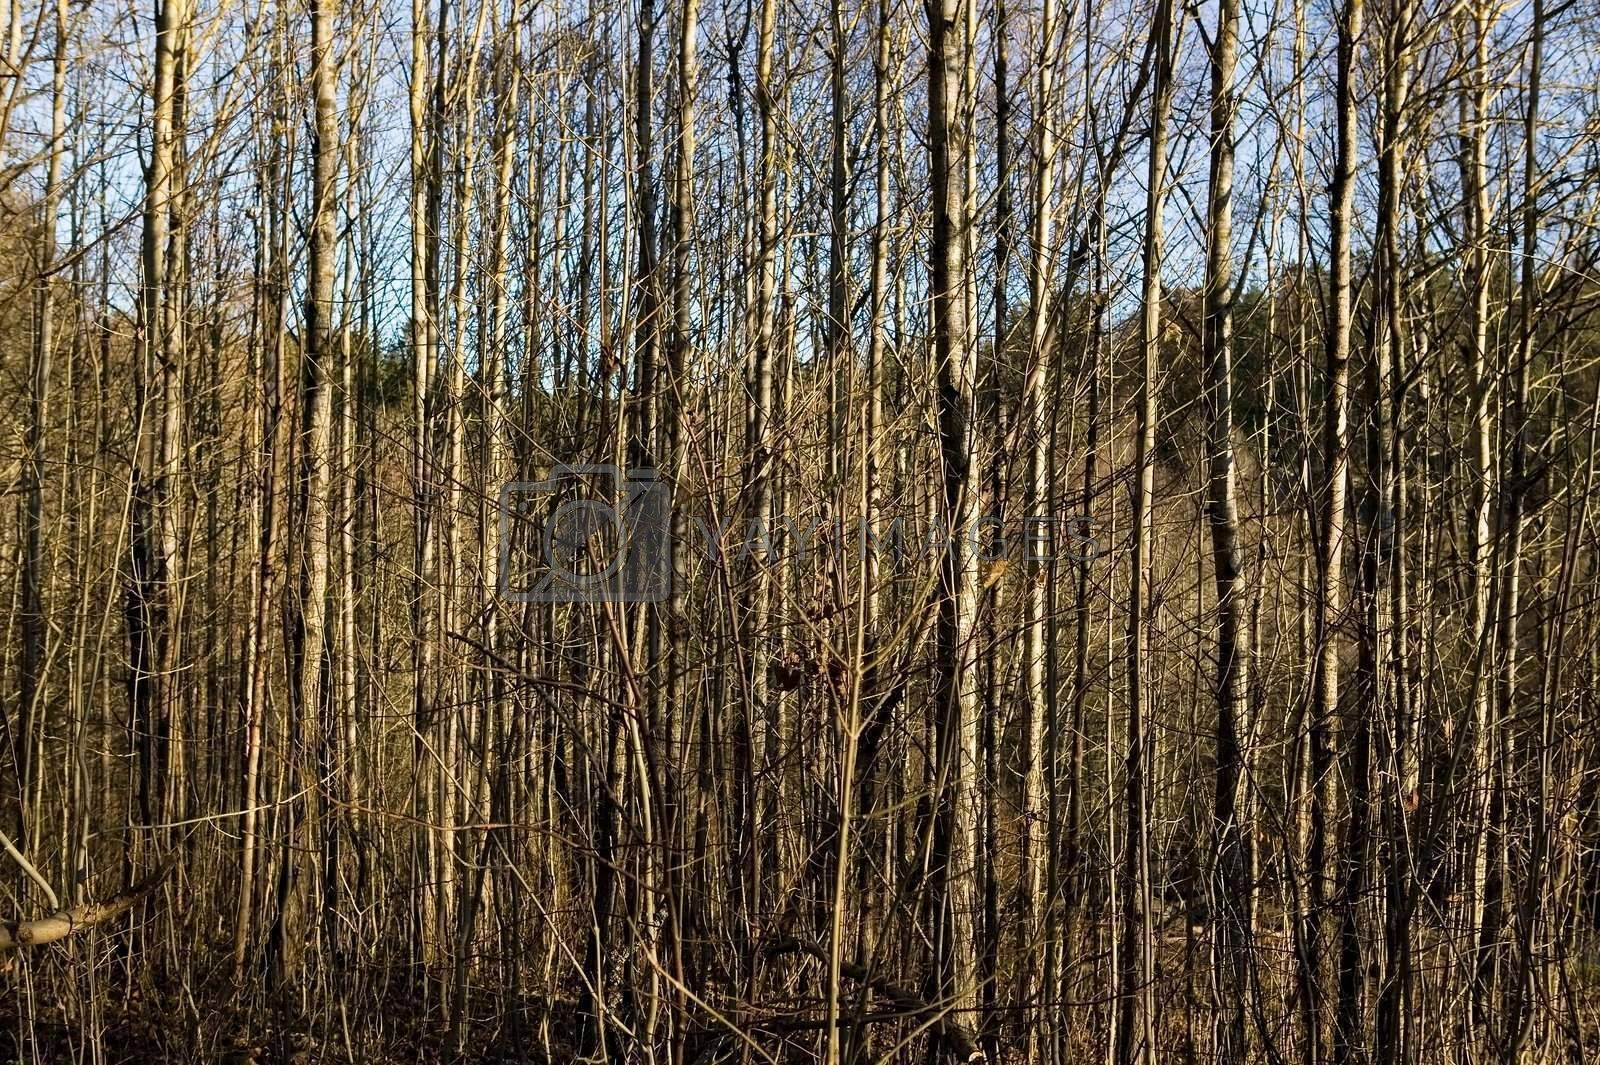 A texture background image of many thin trees without leaves.